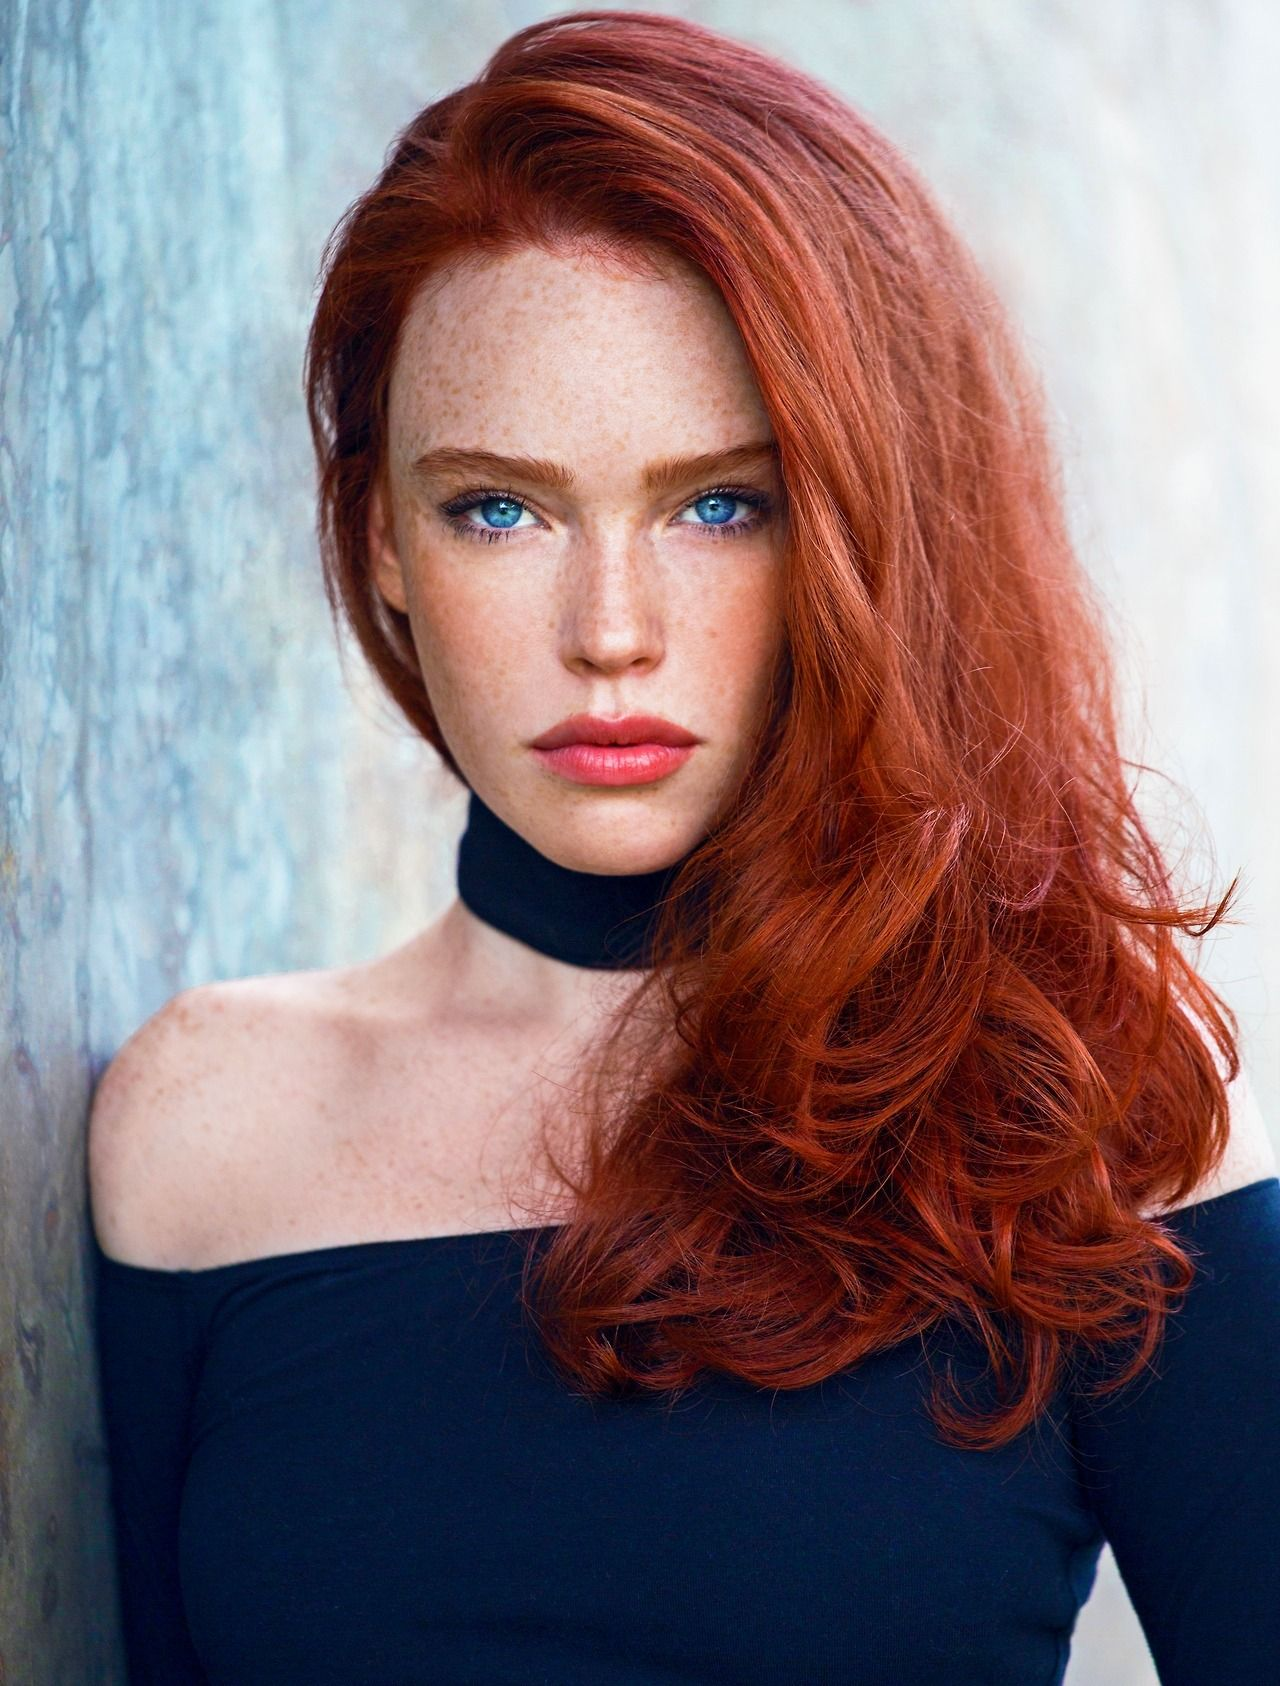 Photos Of Stunningly Beautiful Women Mostly Redheads Occasional Asian Beauties Each One More